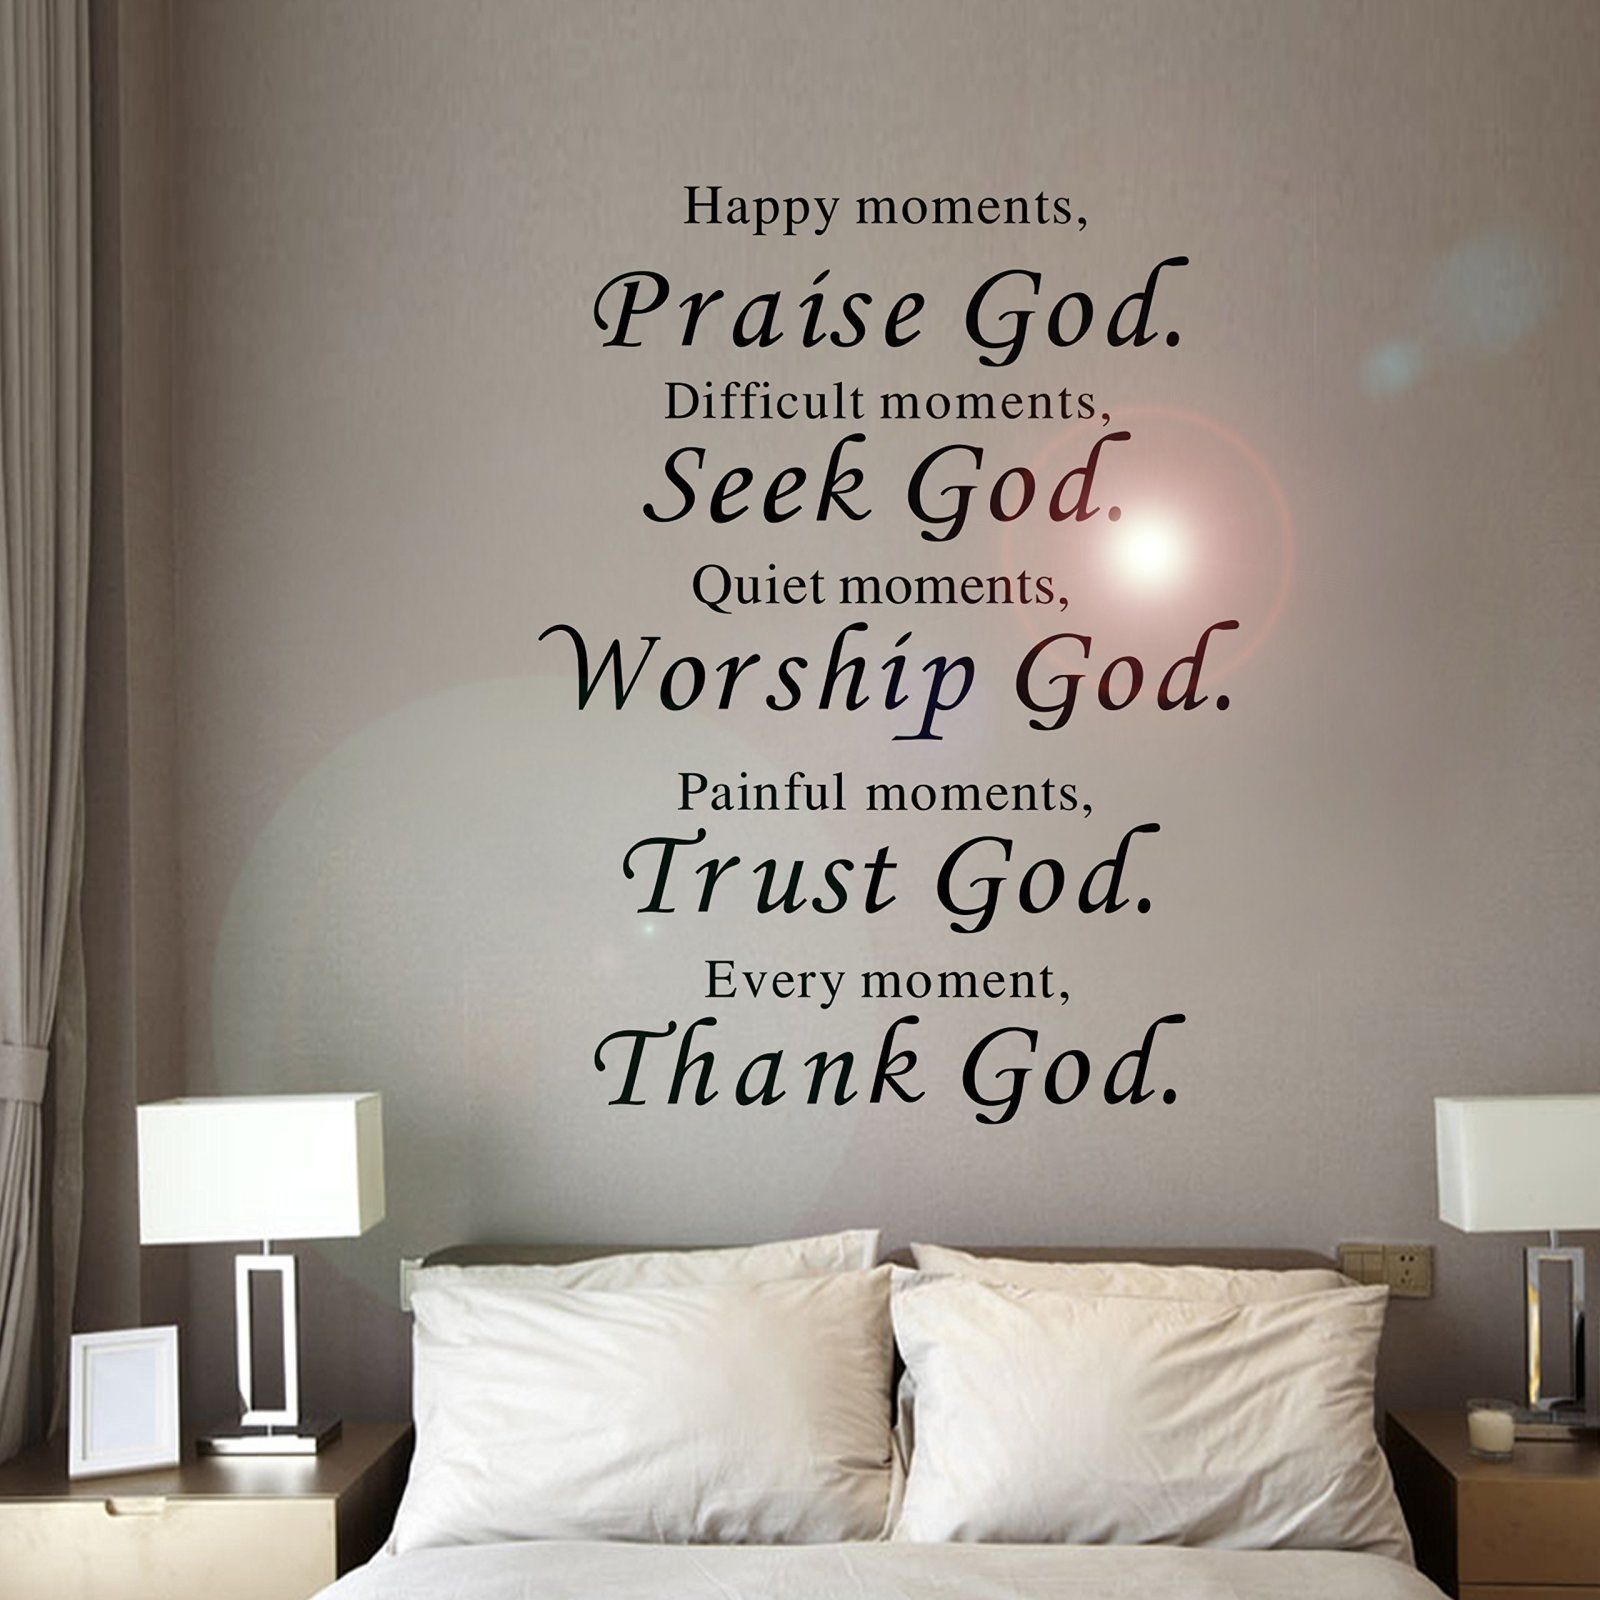 Removable Vinyl Decal Art Mural Home Living Room Decor Quote Wall Sticker Word 986